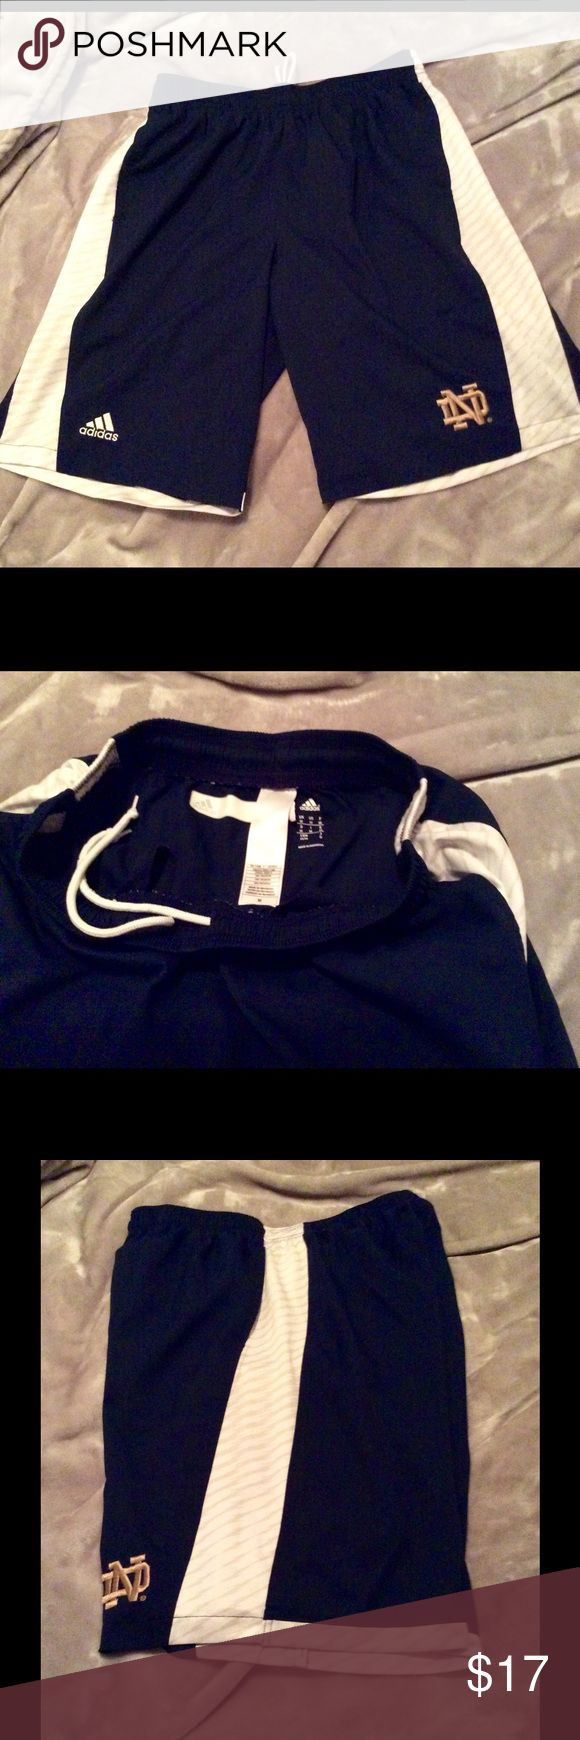 NOTRE DAME ADIDAS OFFICIAL ATHLETIC SHORTS Official University of NOTRE DAME Athletic shorts. Like new athletic department issue. Adidas Shorts Athletic